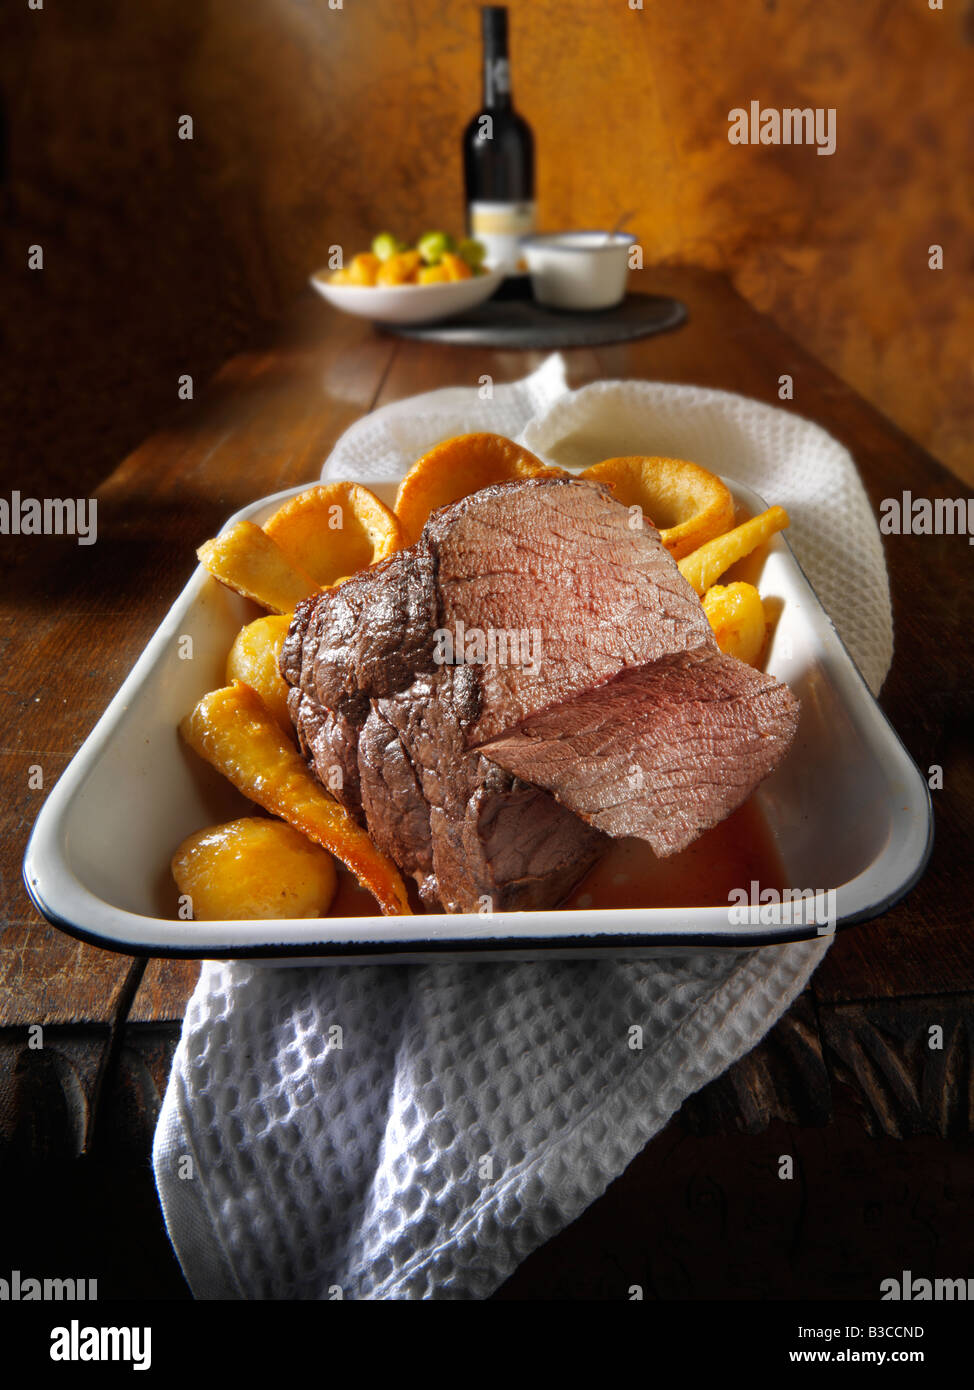 Traditional British roast beef joint, hung for 21 days, roast potatoes, yorkshire puddings - Stock Image